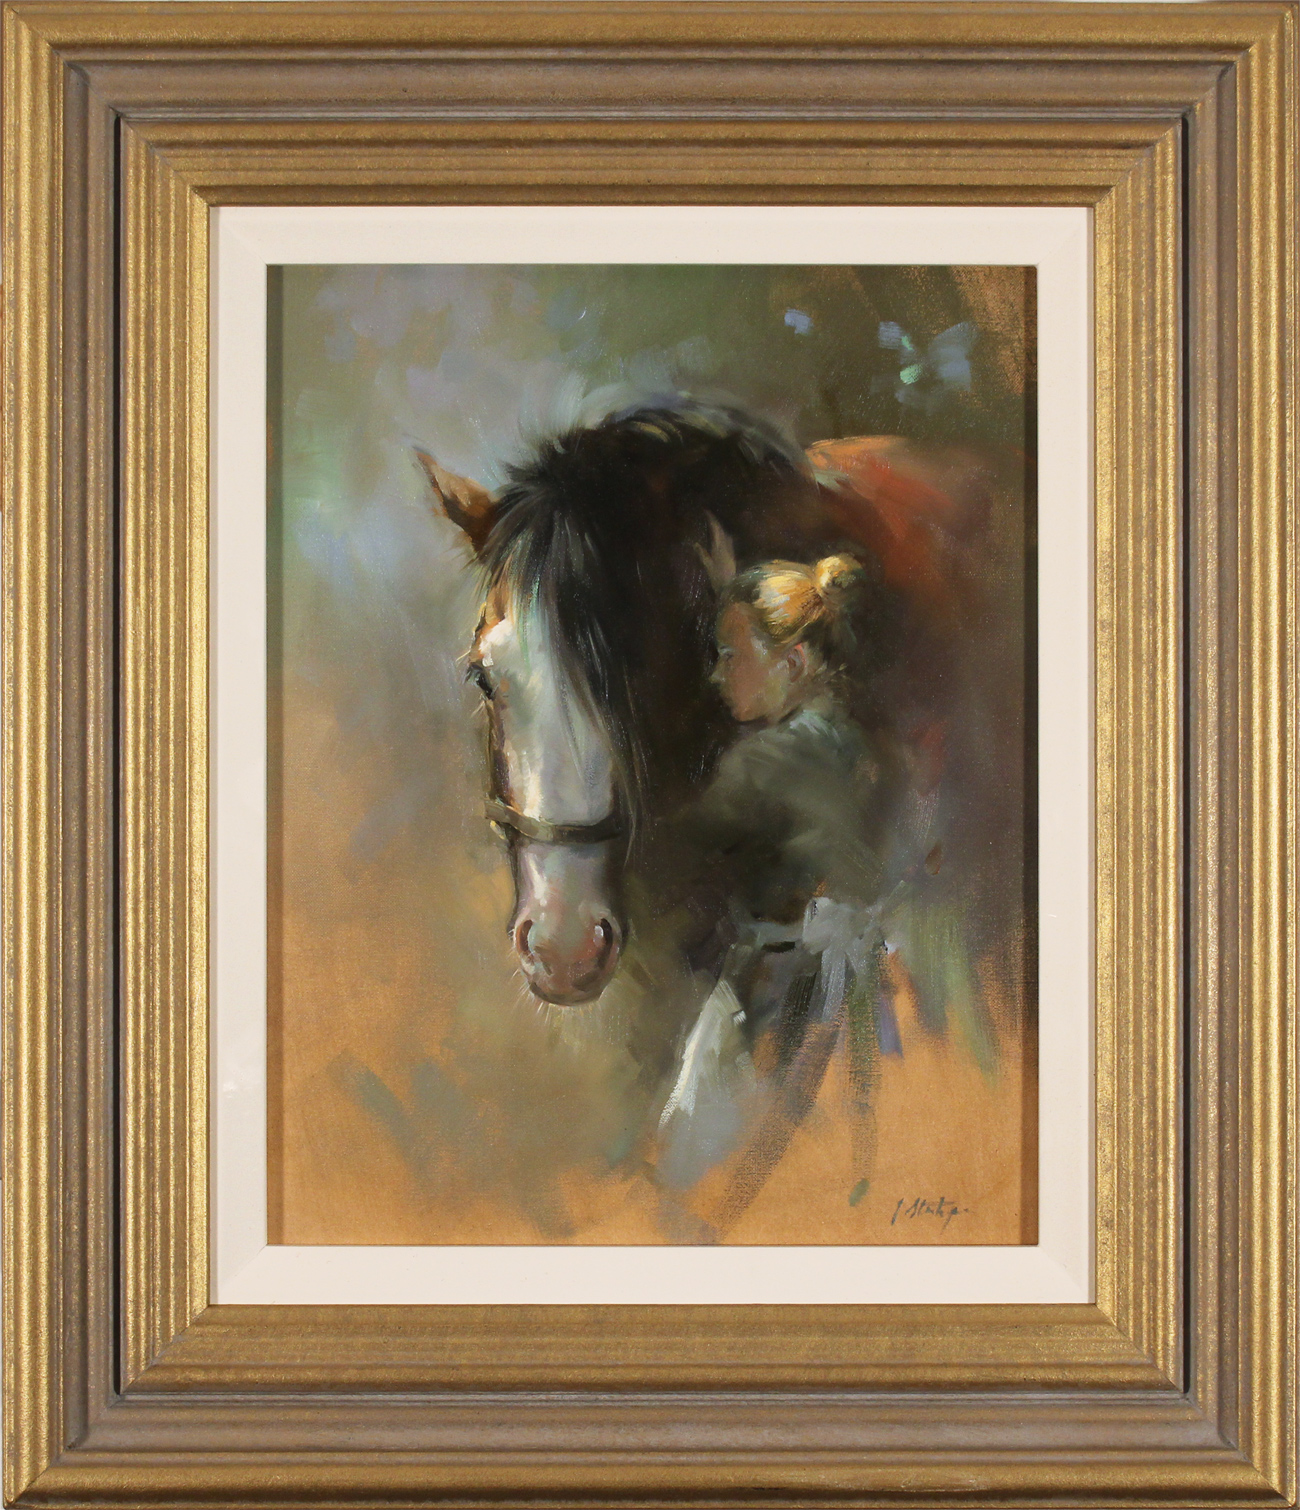 Jacqueline Stanhope, Original oil painting on canvas, My Girl, click to enlarge